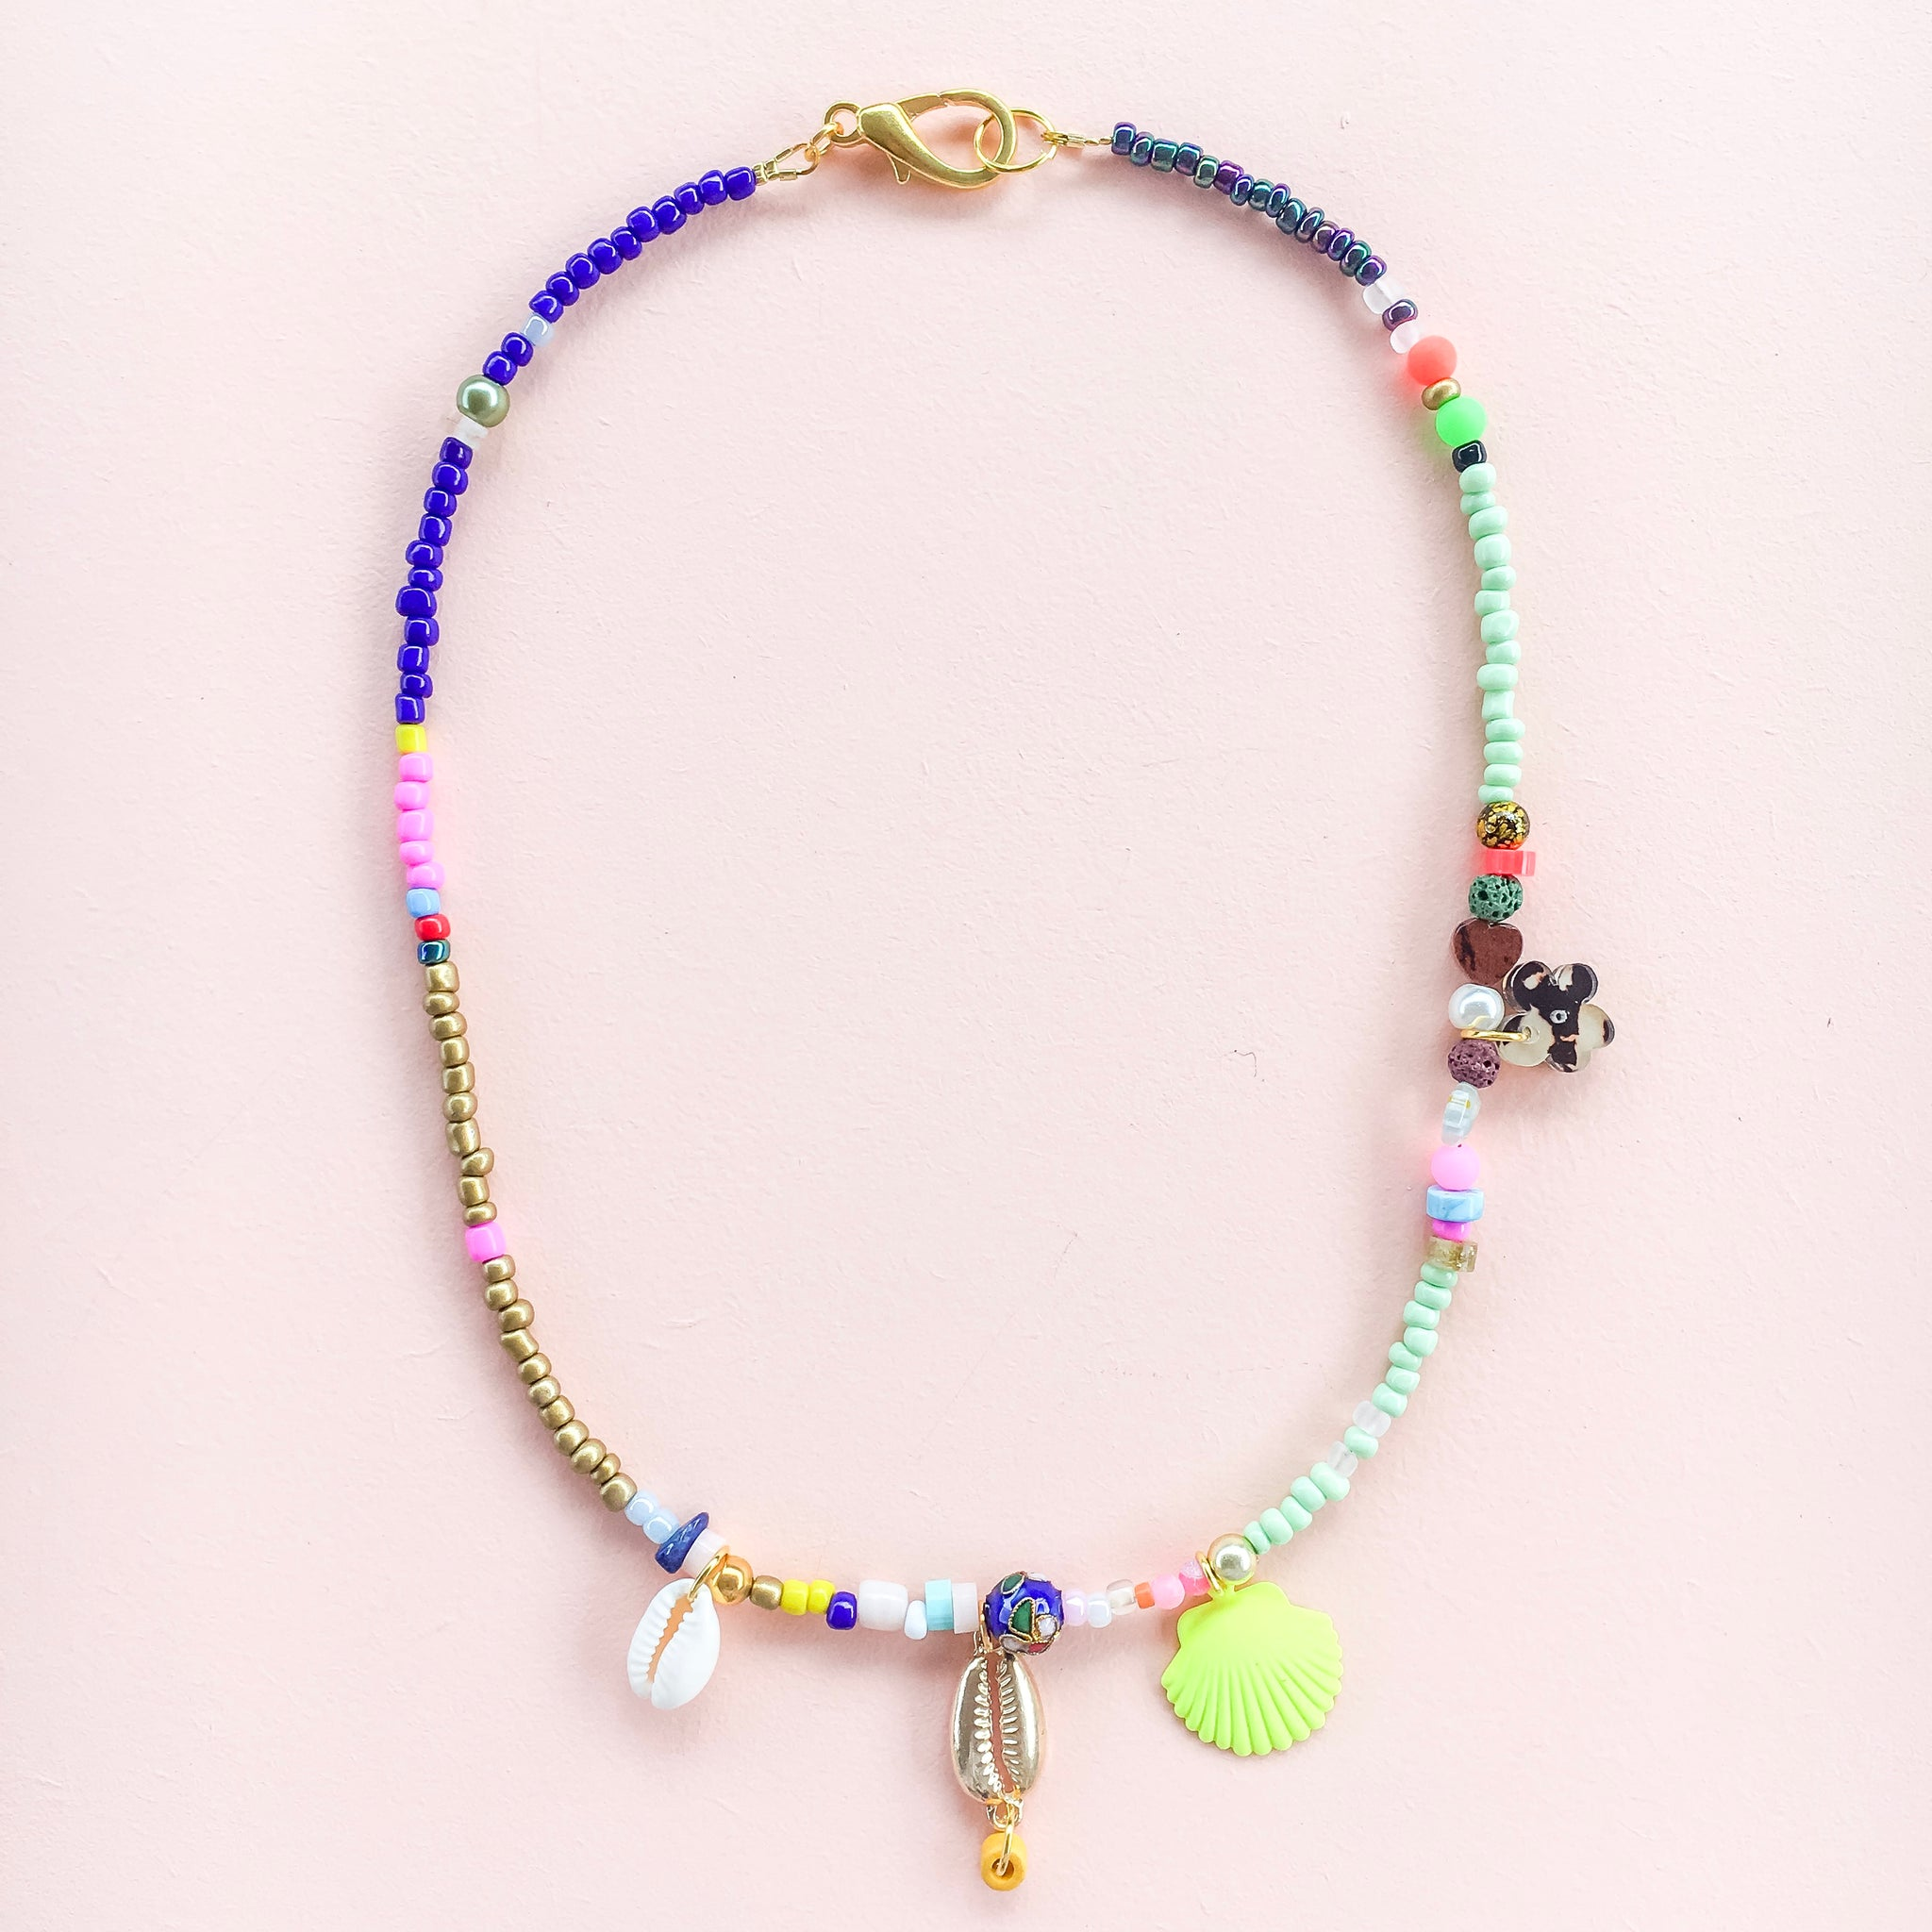 Blue, Green & Gold Necklace with Neon Yellow Clam Shell